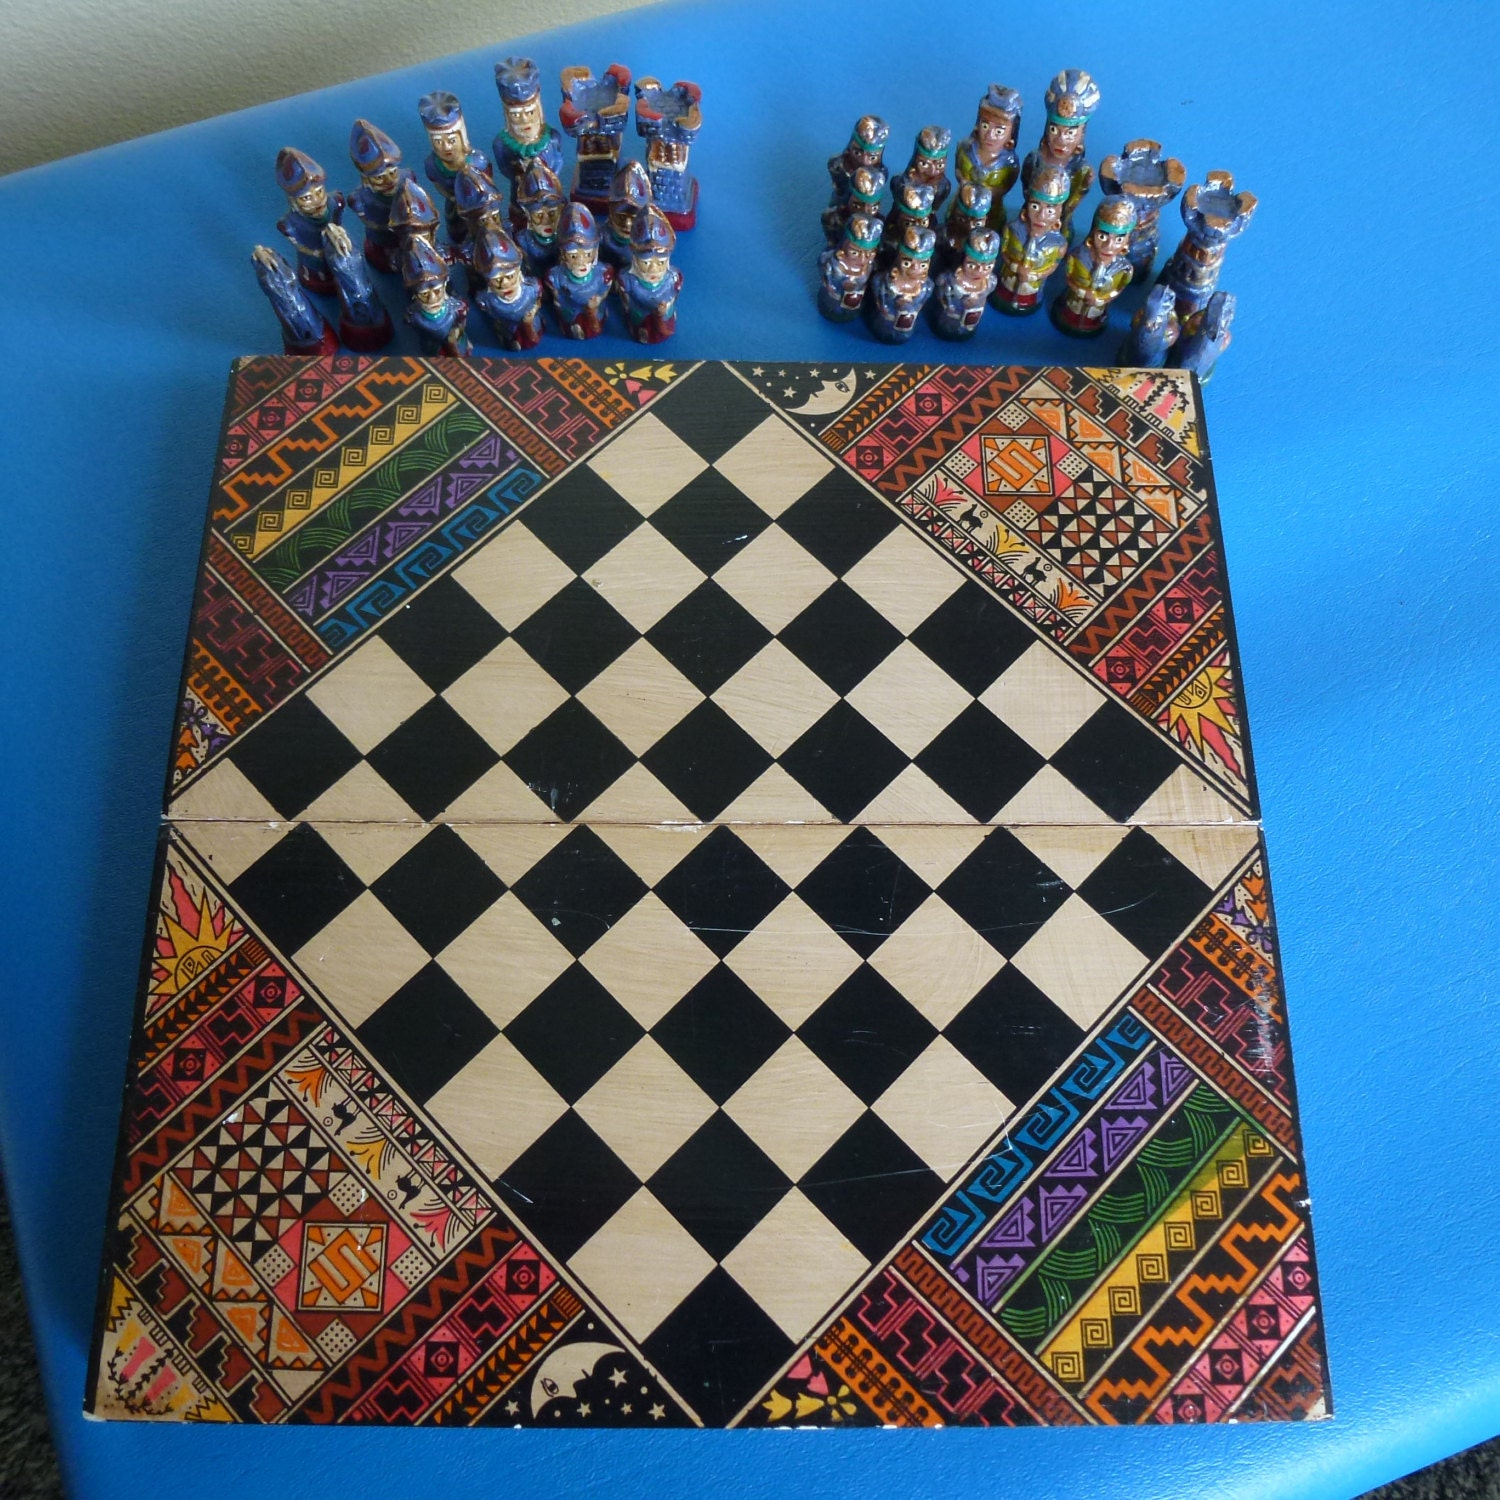 Vintage colorful ornate wood chess set unique by nvmercantile - Ornate chess sets ...